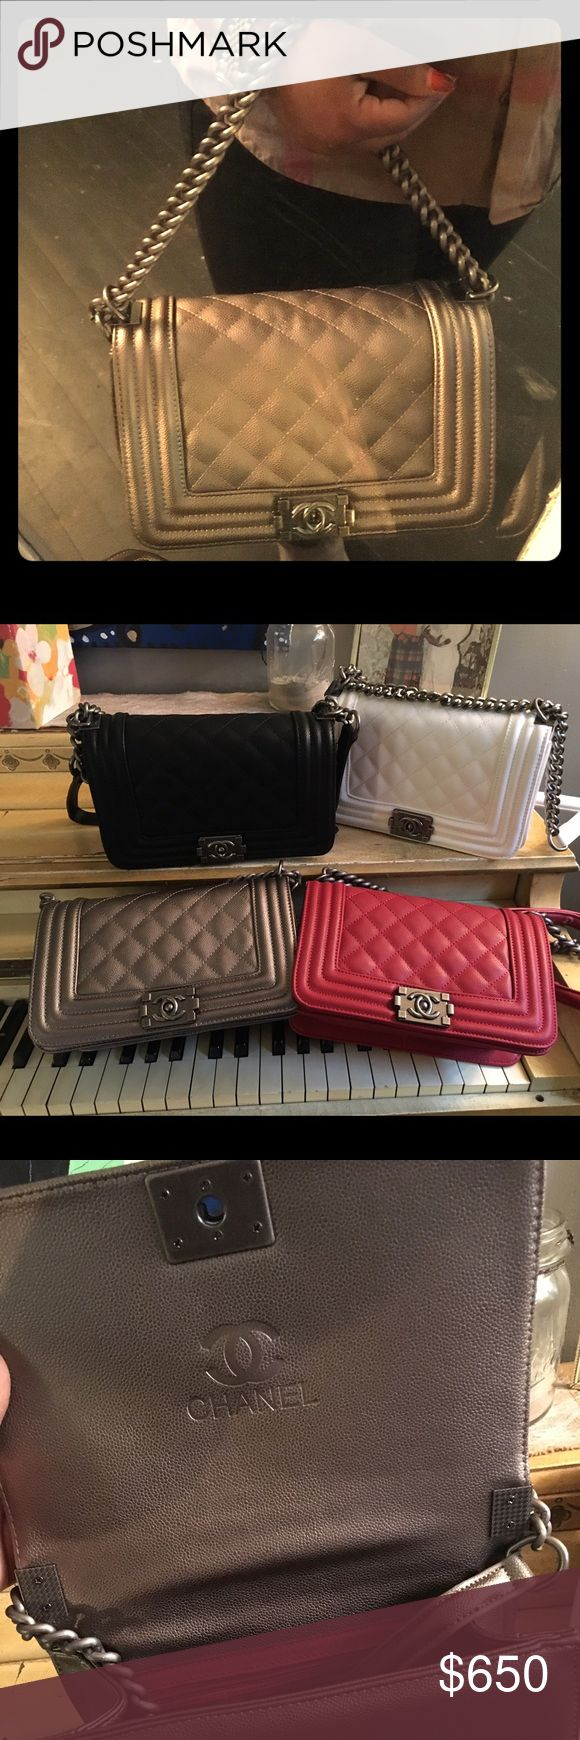 """My last of my Collection... Silver/pewter color My last of my Collection... Silver/pewter color Chanel bag new. Price reflects authenticity. A1 bag, brand new👌🏿 11x6.5"""" CHANEL Bags"""